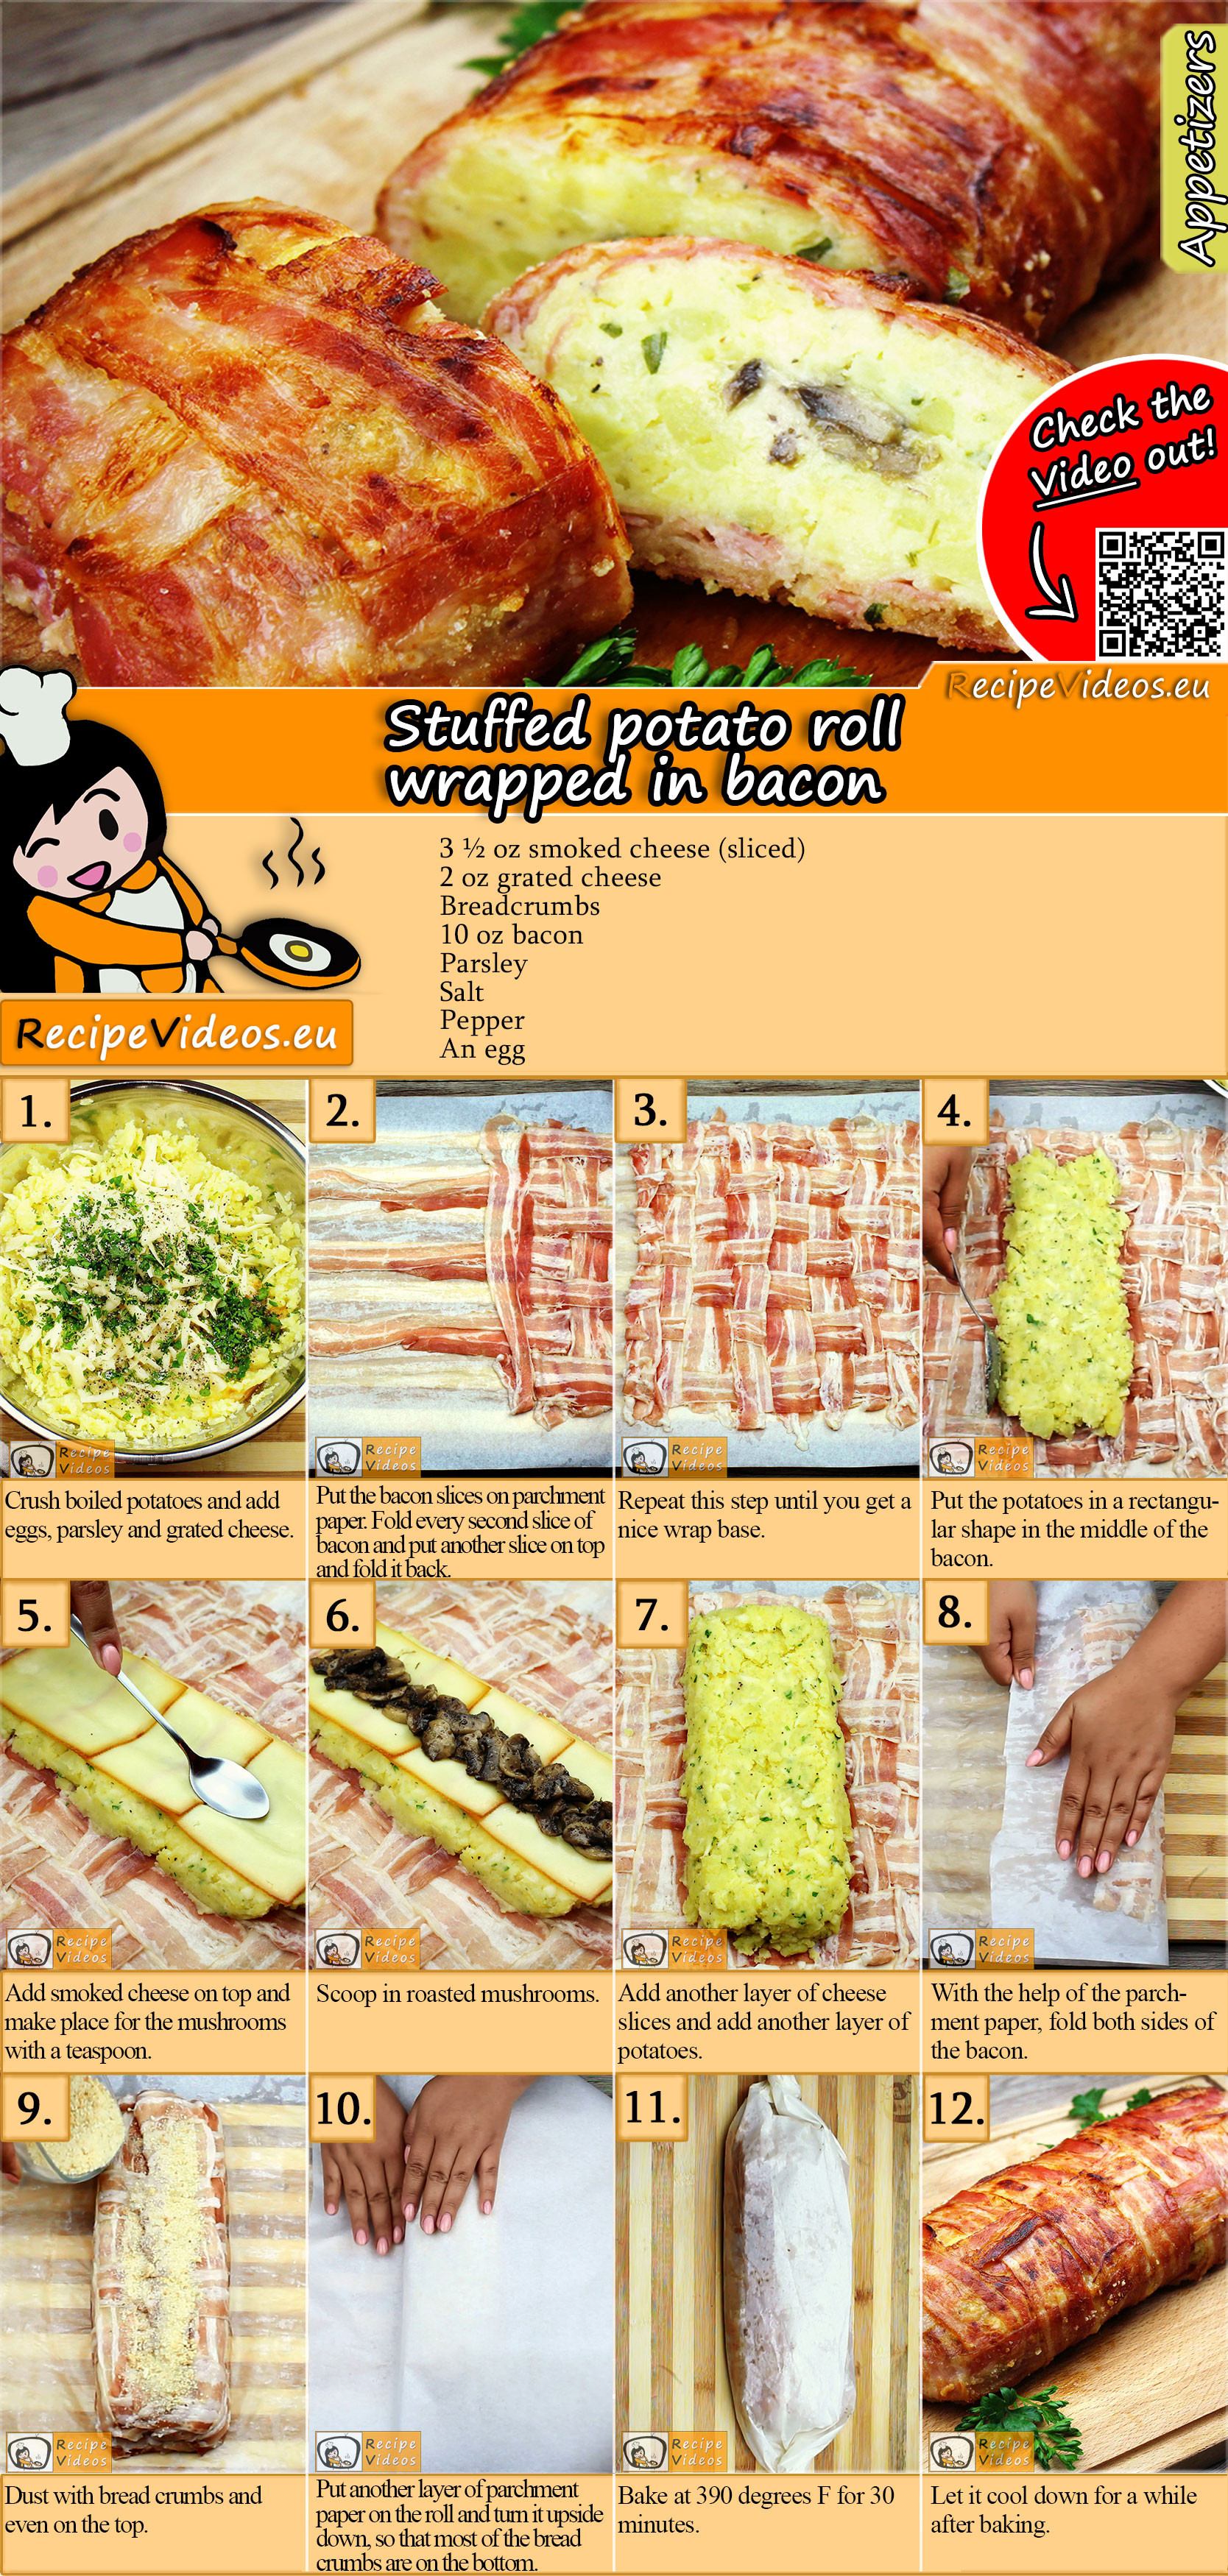 Stuffed potato roll wrapped in bacon recipe with video